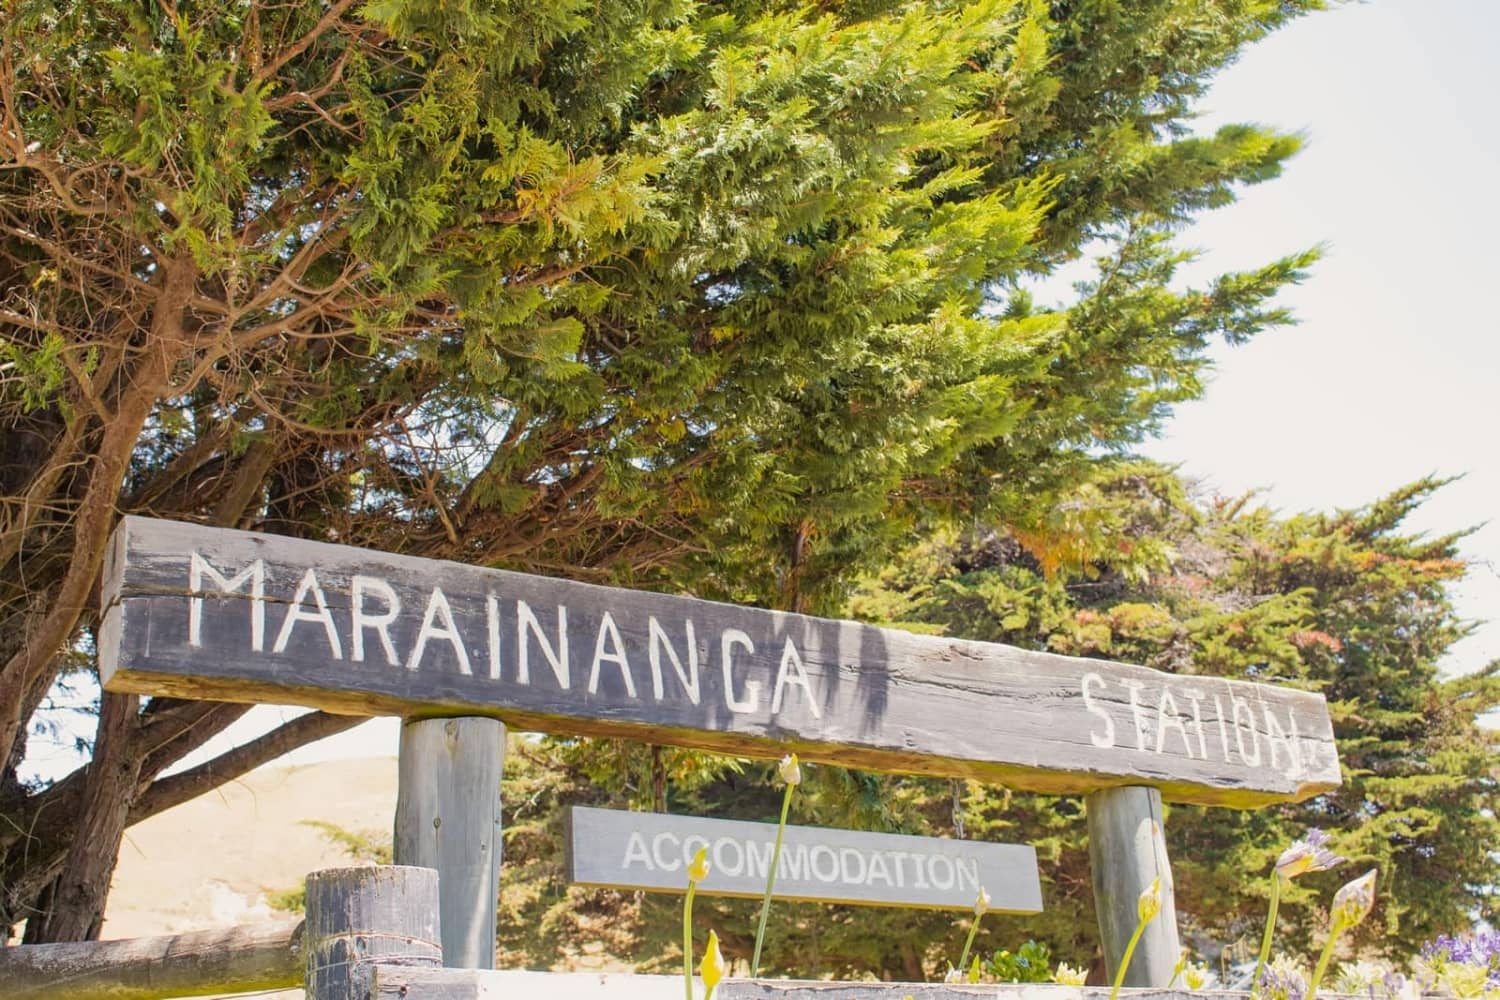 Marainanga Station Homestay Akitio Tararua 7217